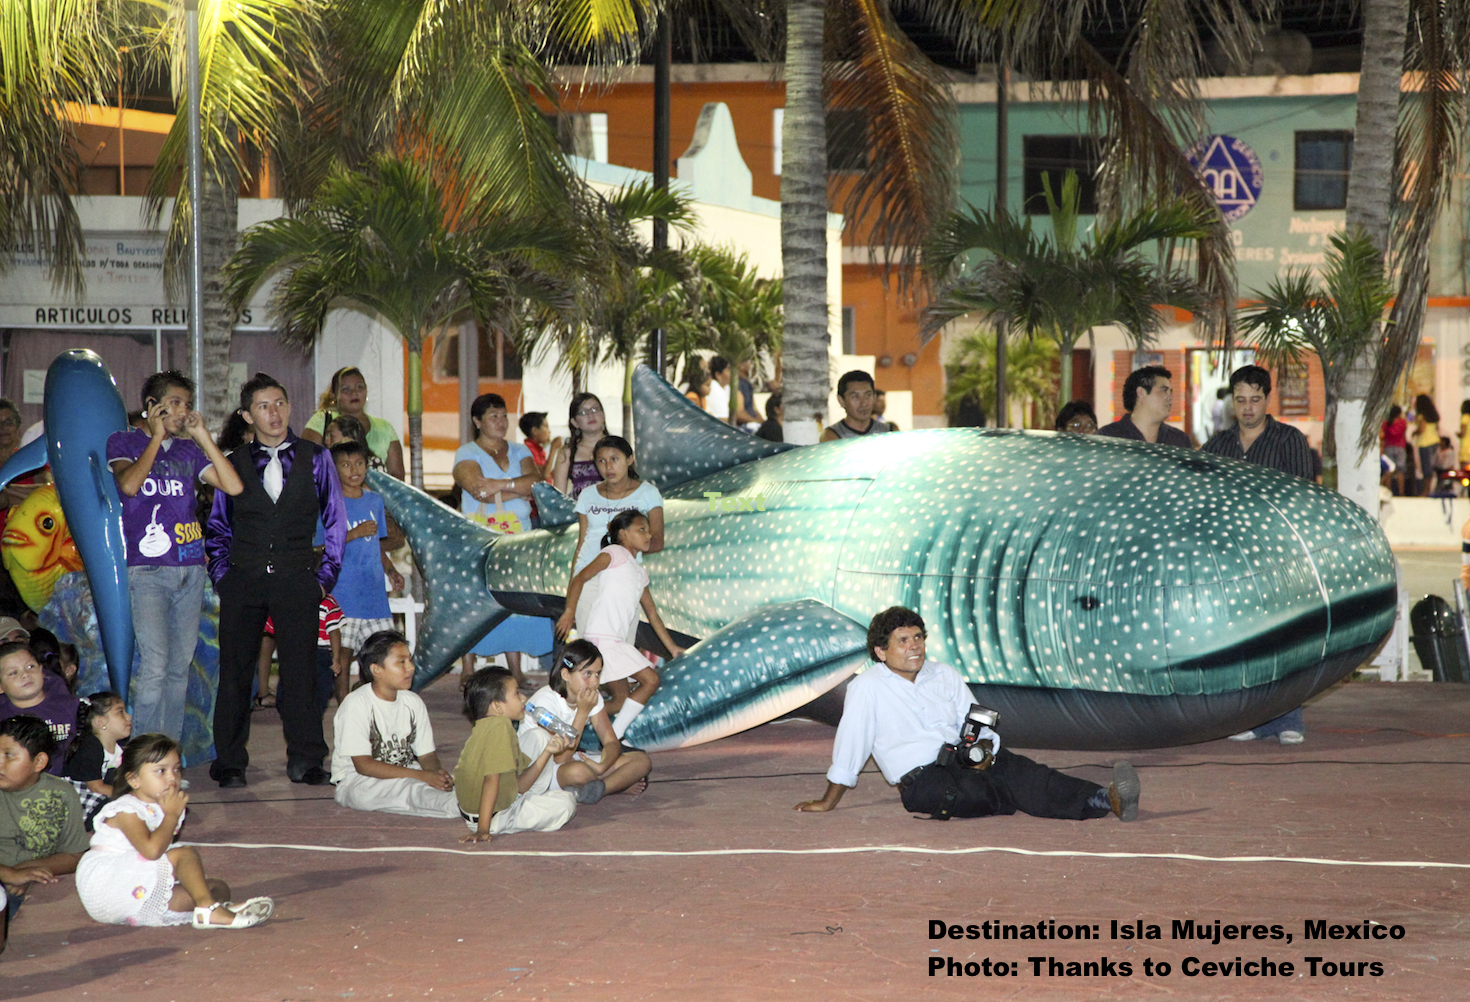 The people of Isla Mujeres, Mexico have turned their one-time fishing industry toward responsible tourism - and whale sharks are big beneficiary. This is at their annual whale shark festival. Image: Thanks to Ceviche Tours.